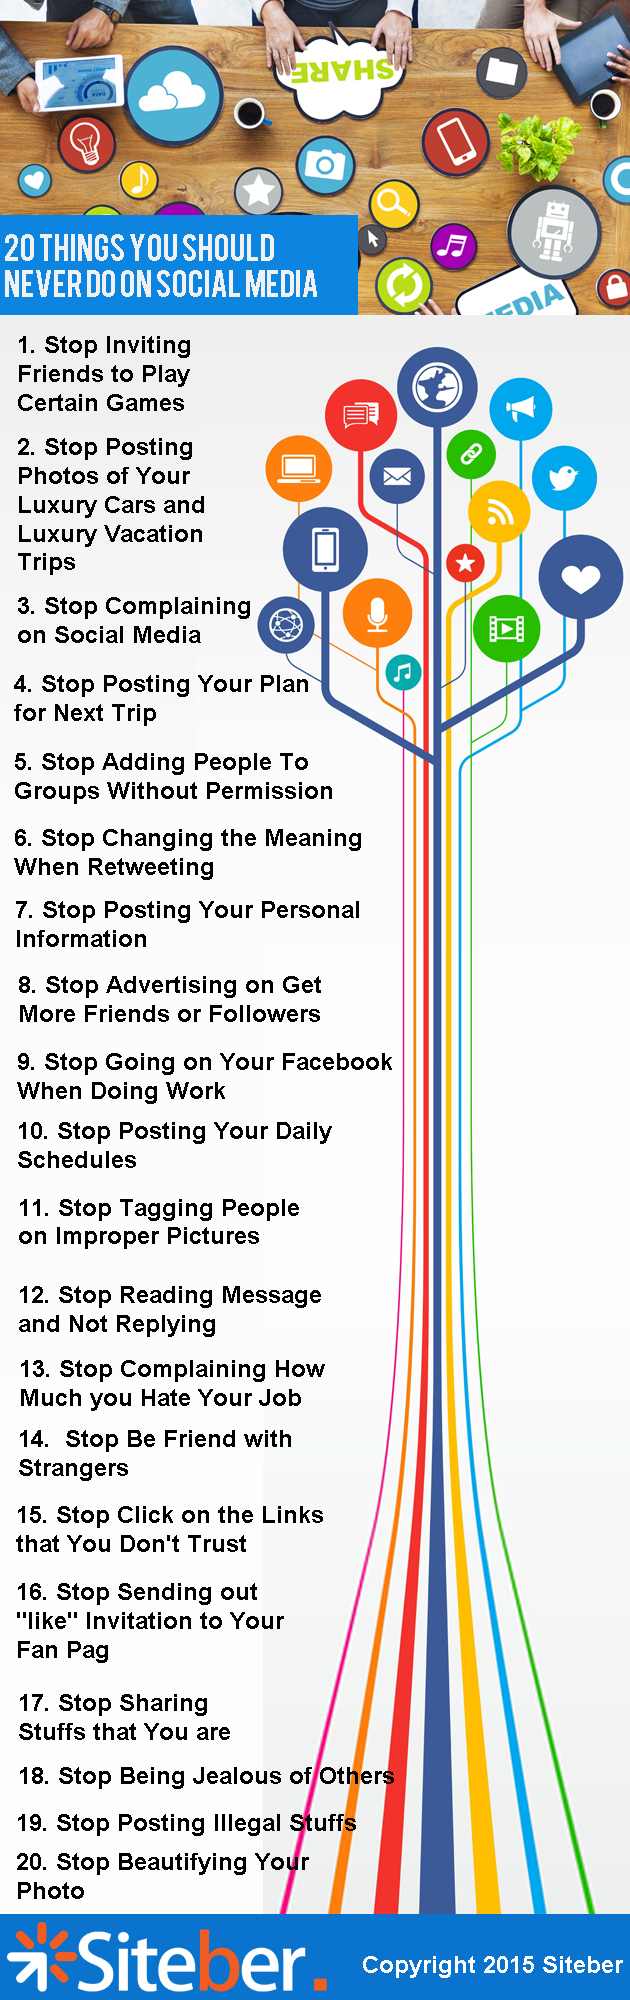 Things You Should Never Do on Social Media